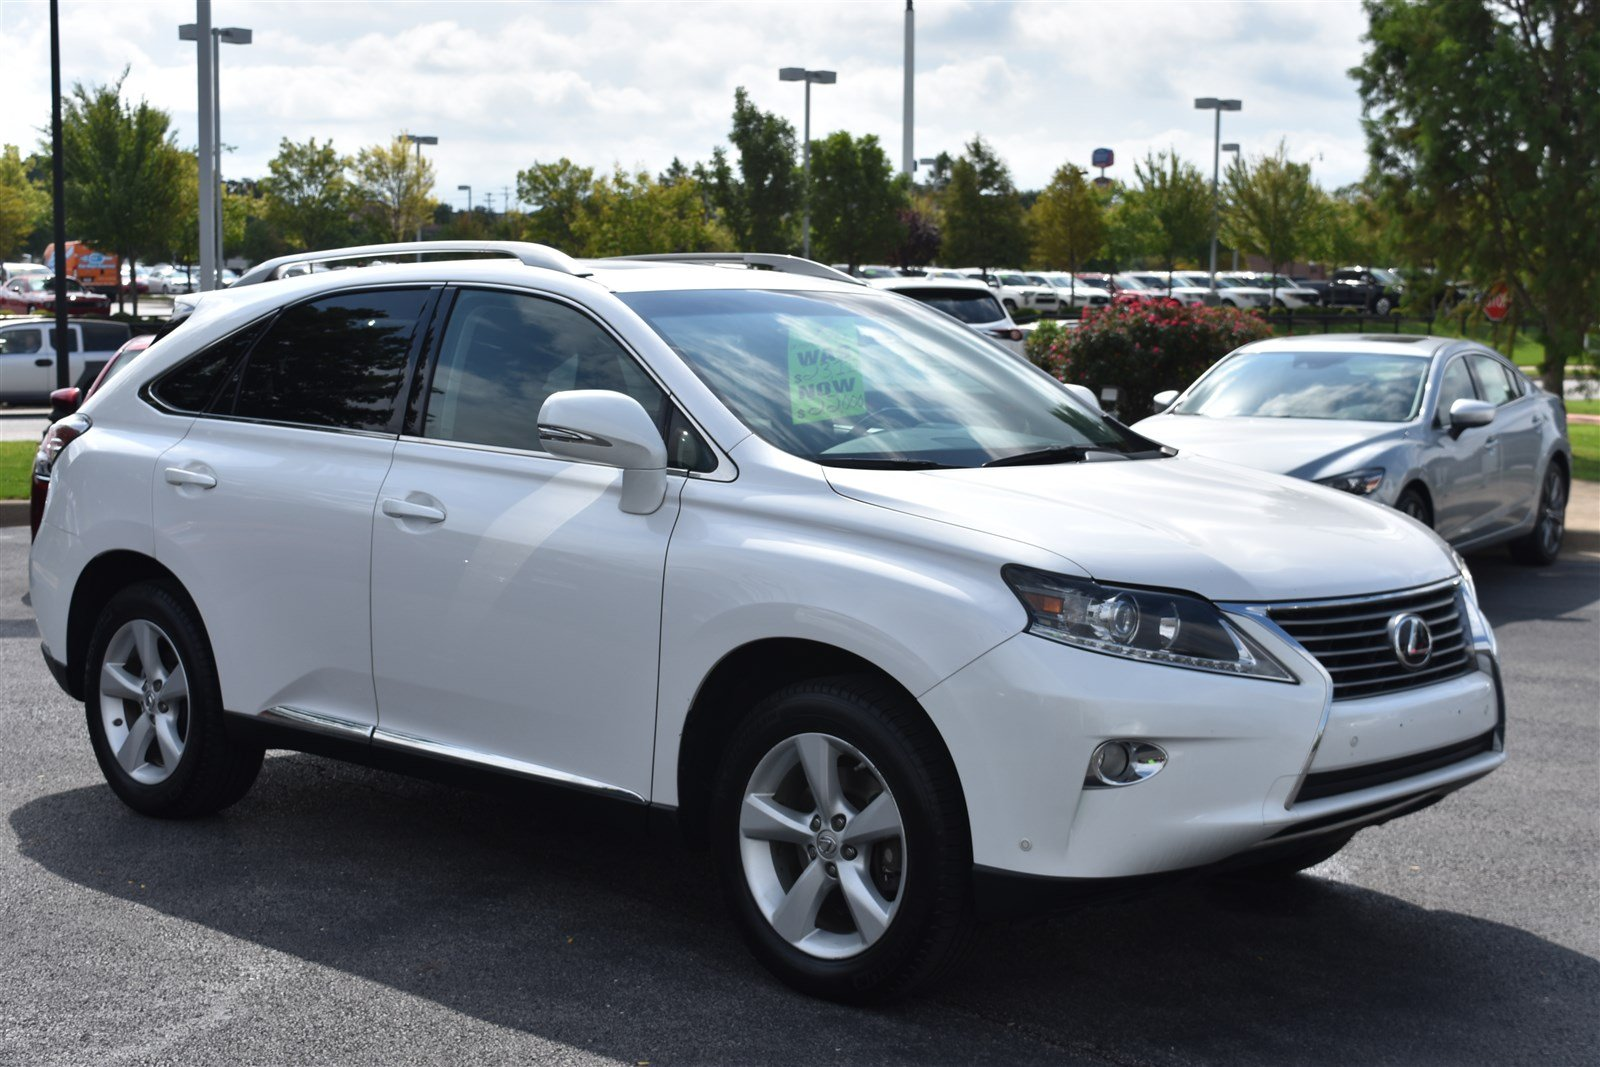 Charming Pre Owned 2013 Lexus RX 350 4WD